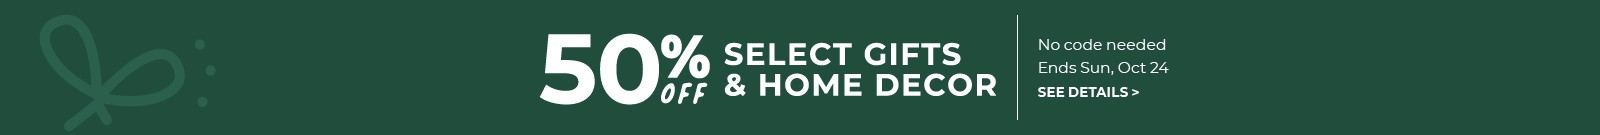 50% off select gifts & home decor, no code needed, ends Sun, Oct 24, see details